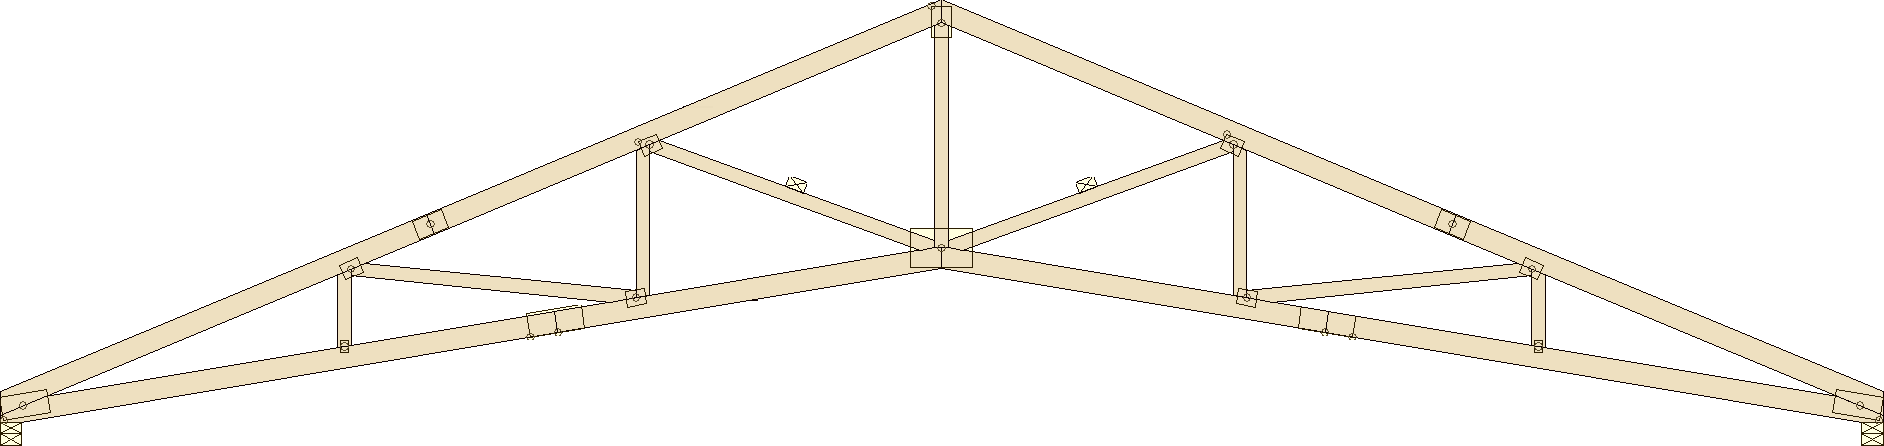 Scissor Truss Diy Crafts